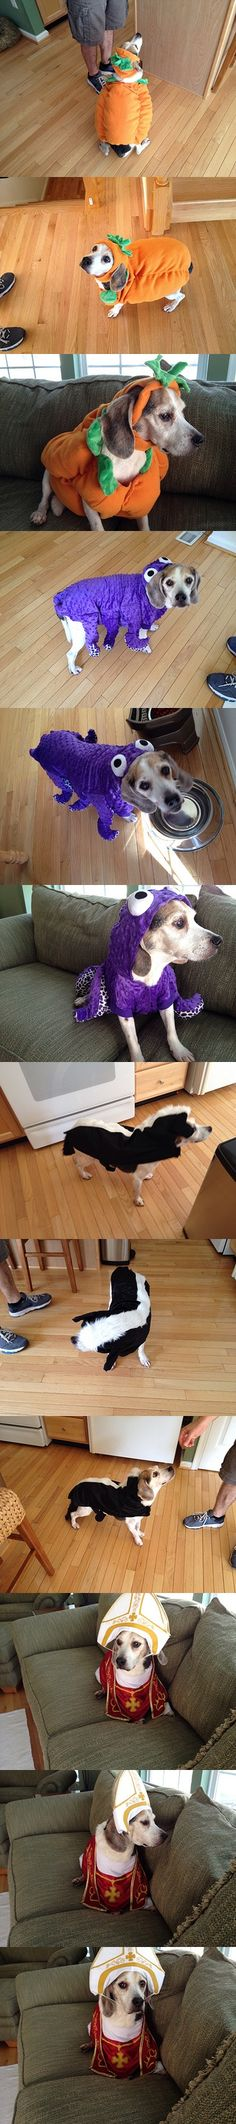 Spenser tries on some of our Halloween dog costumes #halloween